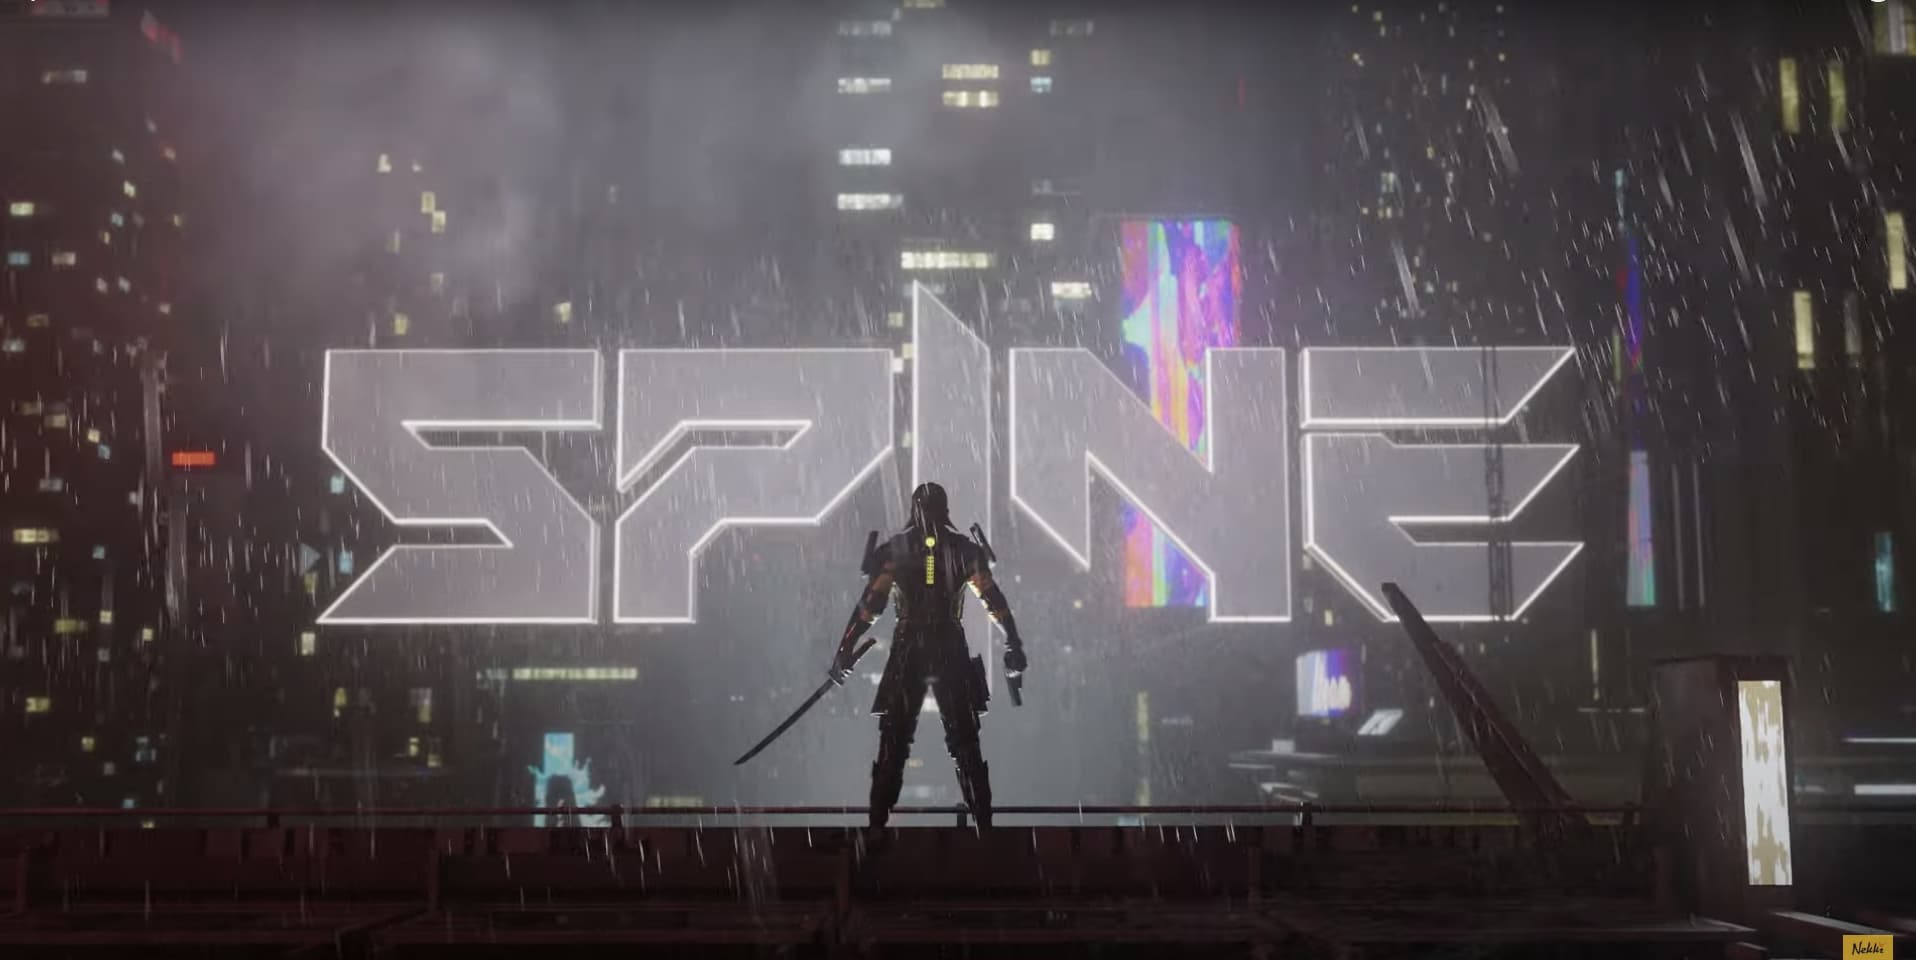 Spine is a New Cyberpunk Action Game from the Developer of the Shadow Fight Series